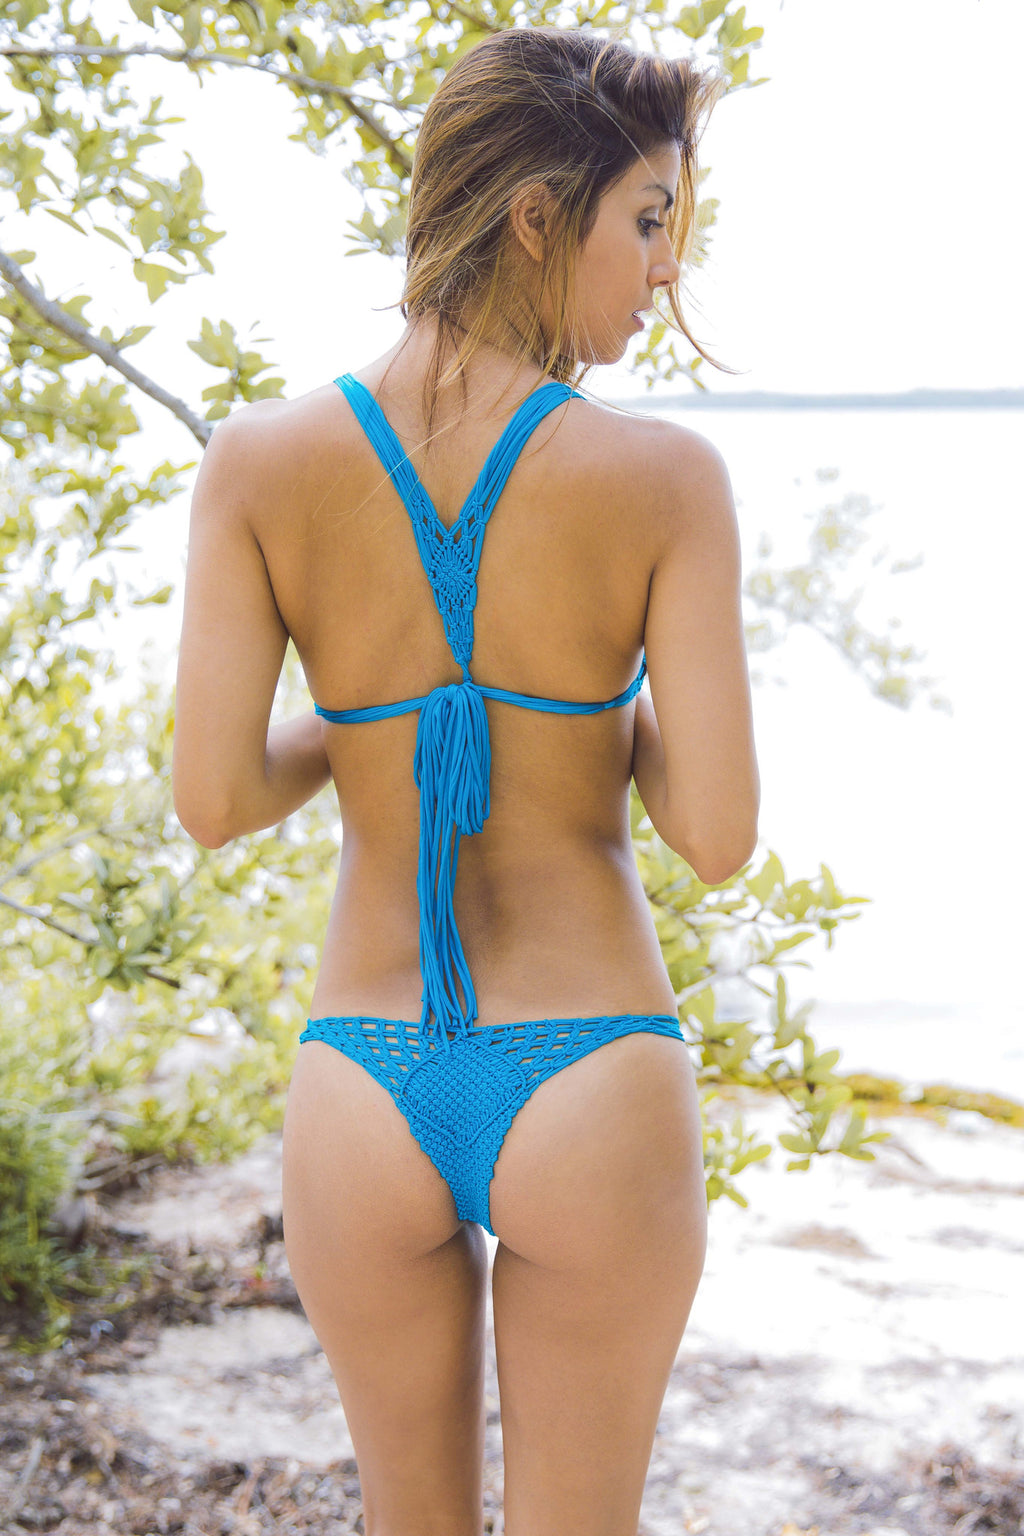 Koh Samui Macrame Bottom in Teal - Boho Bum Island